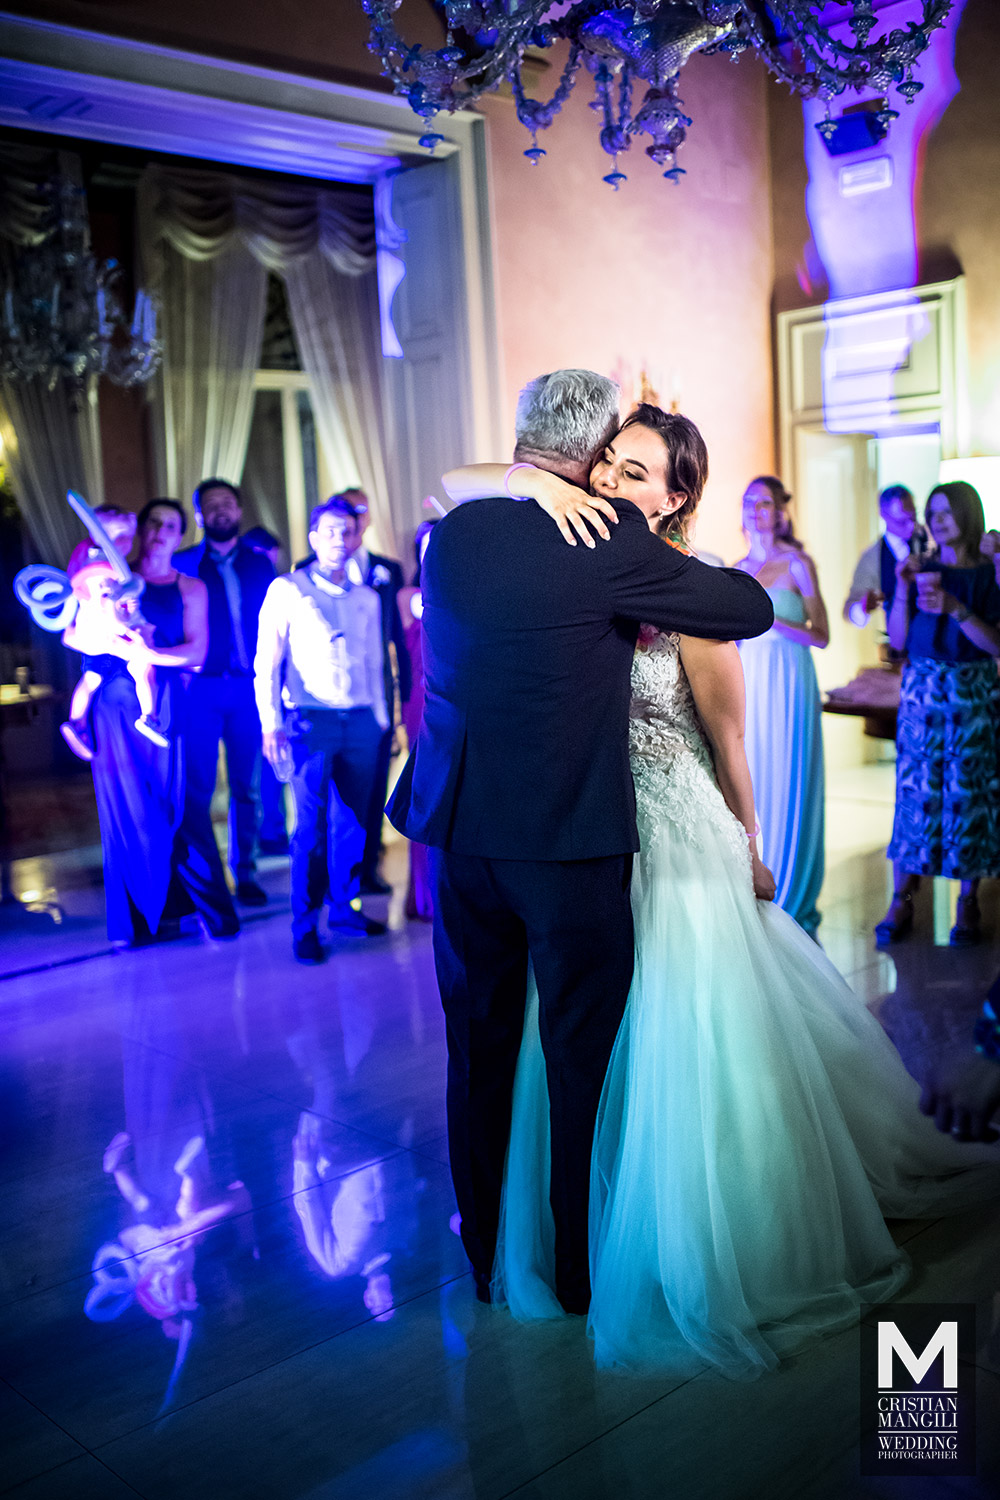 italian-wedding-photography-bride-father-dancing-villa-mattioli